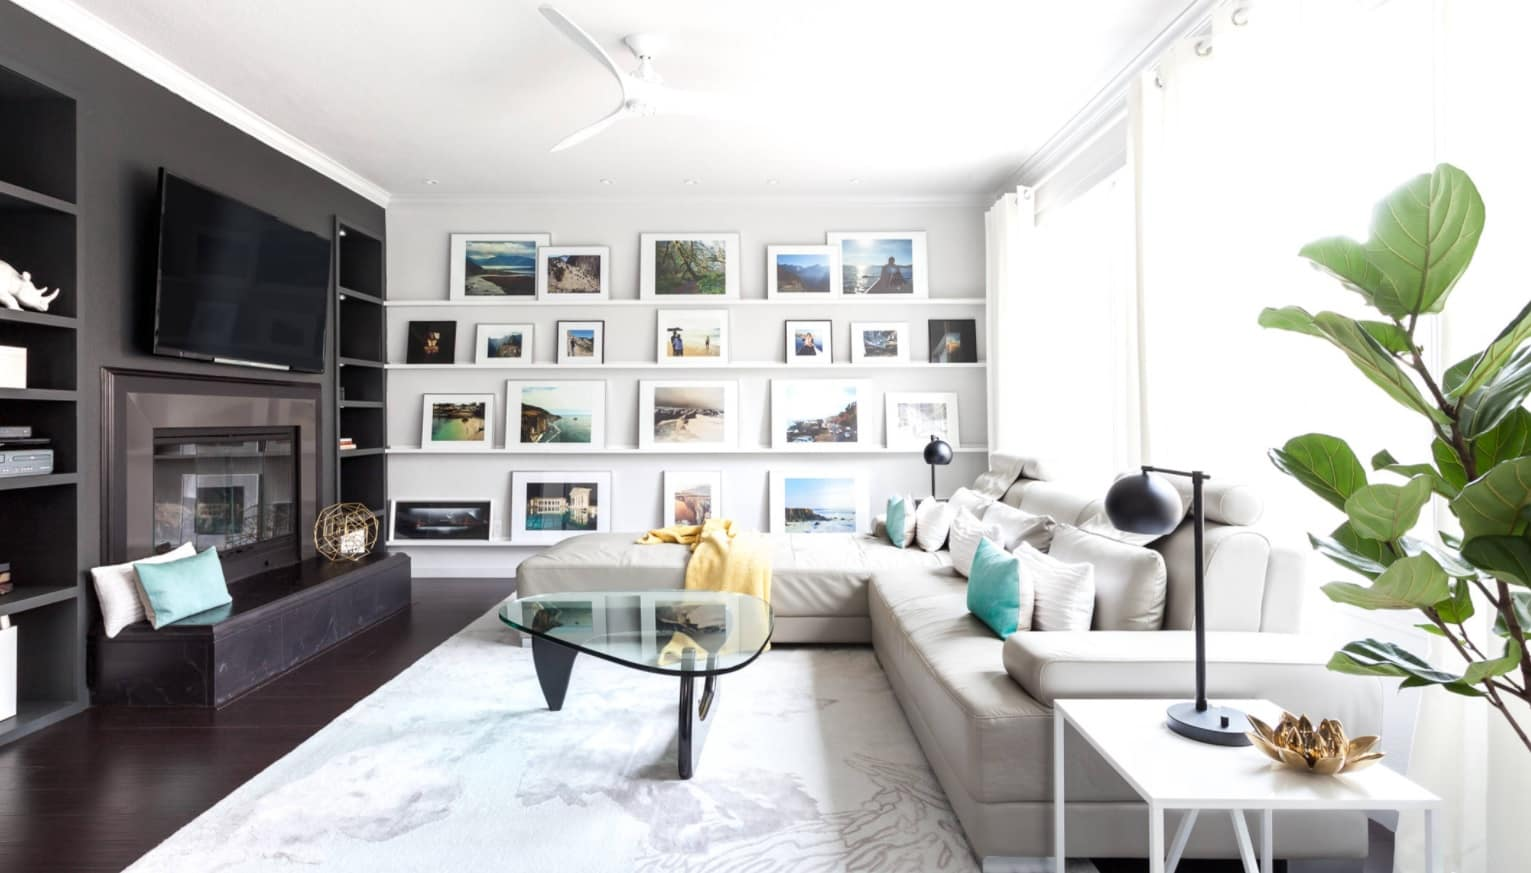 8 Beautiful Ways to Improve Your Home. Homey atmosphere in contemporary designed living room with large angular sofa, fluffy rug, glass coffee table and pictures at the focal wall